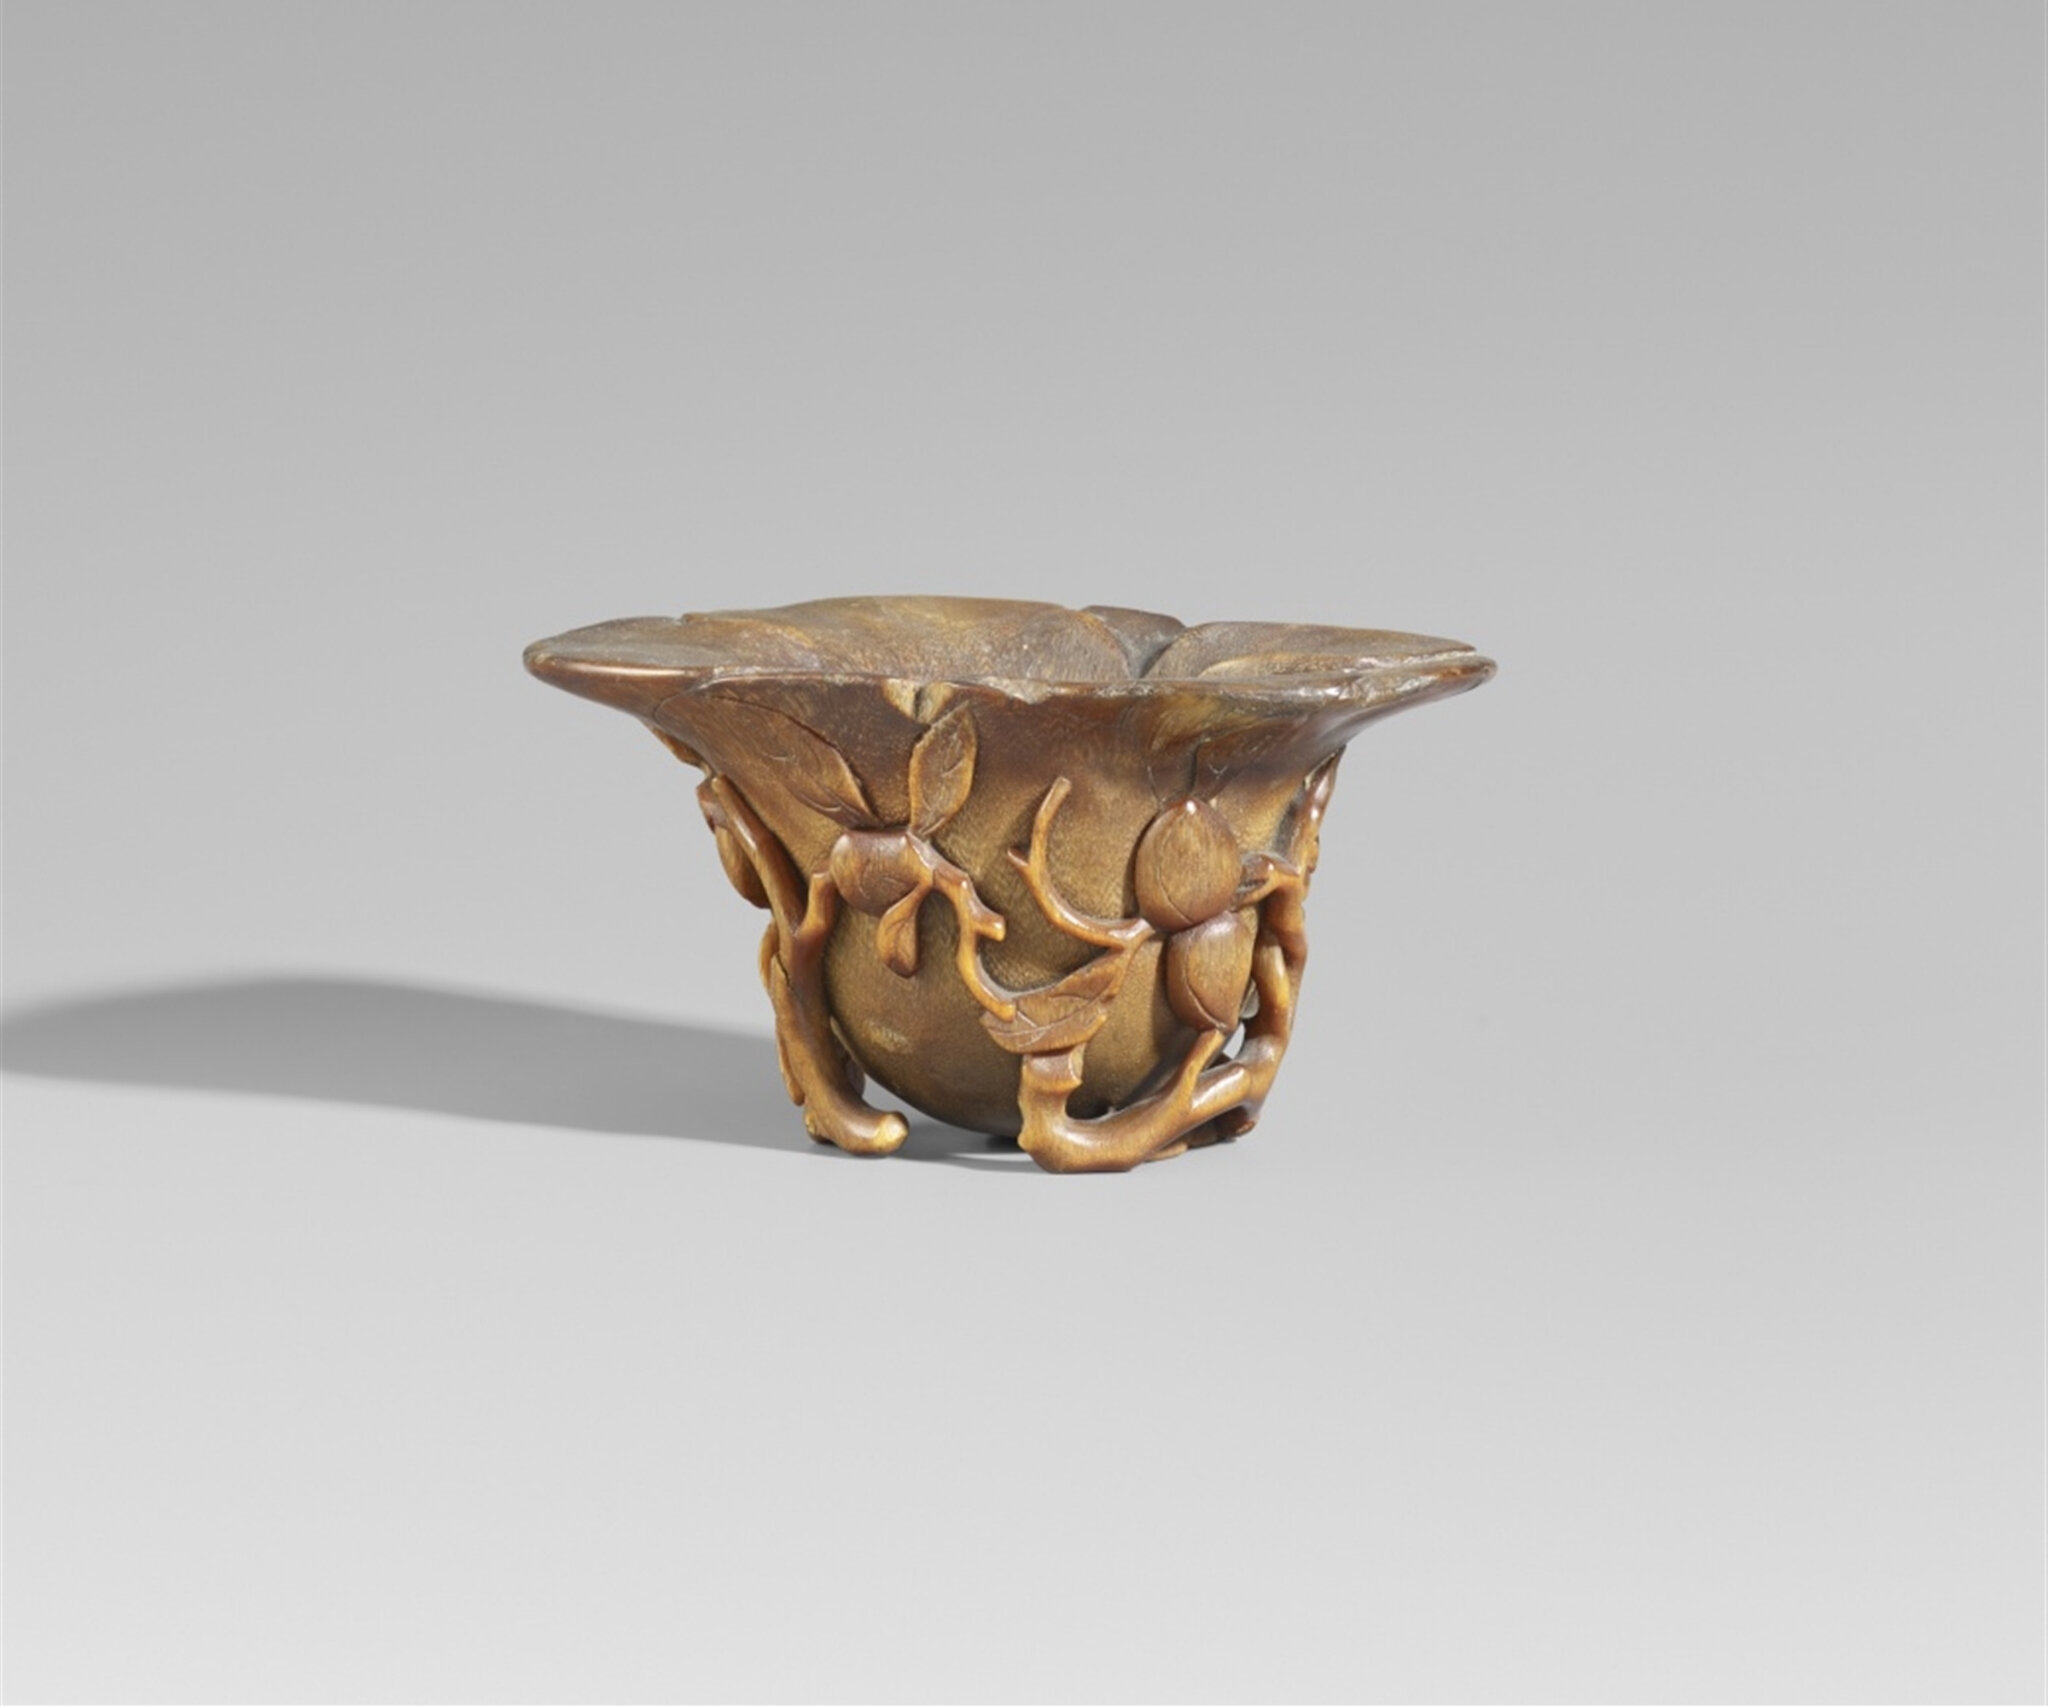 A rhinoceros horn libation cup, 18th-19th century